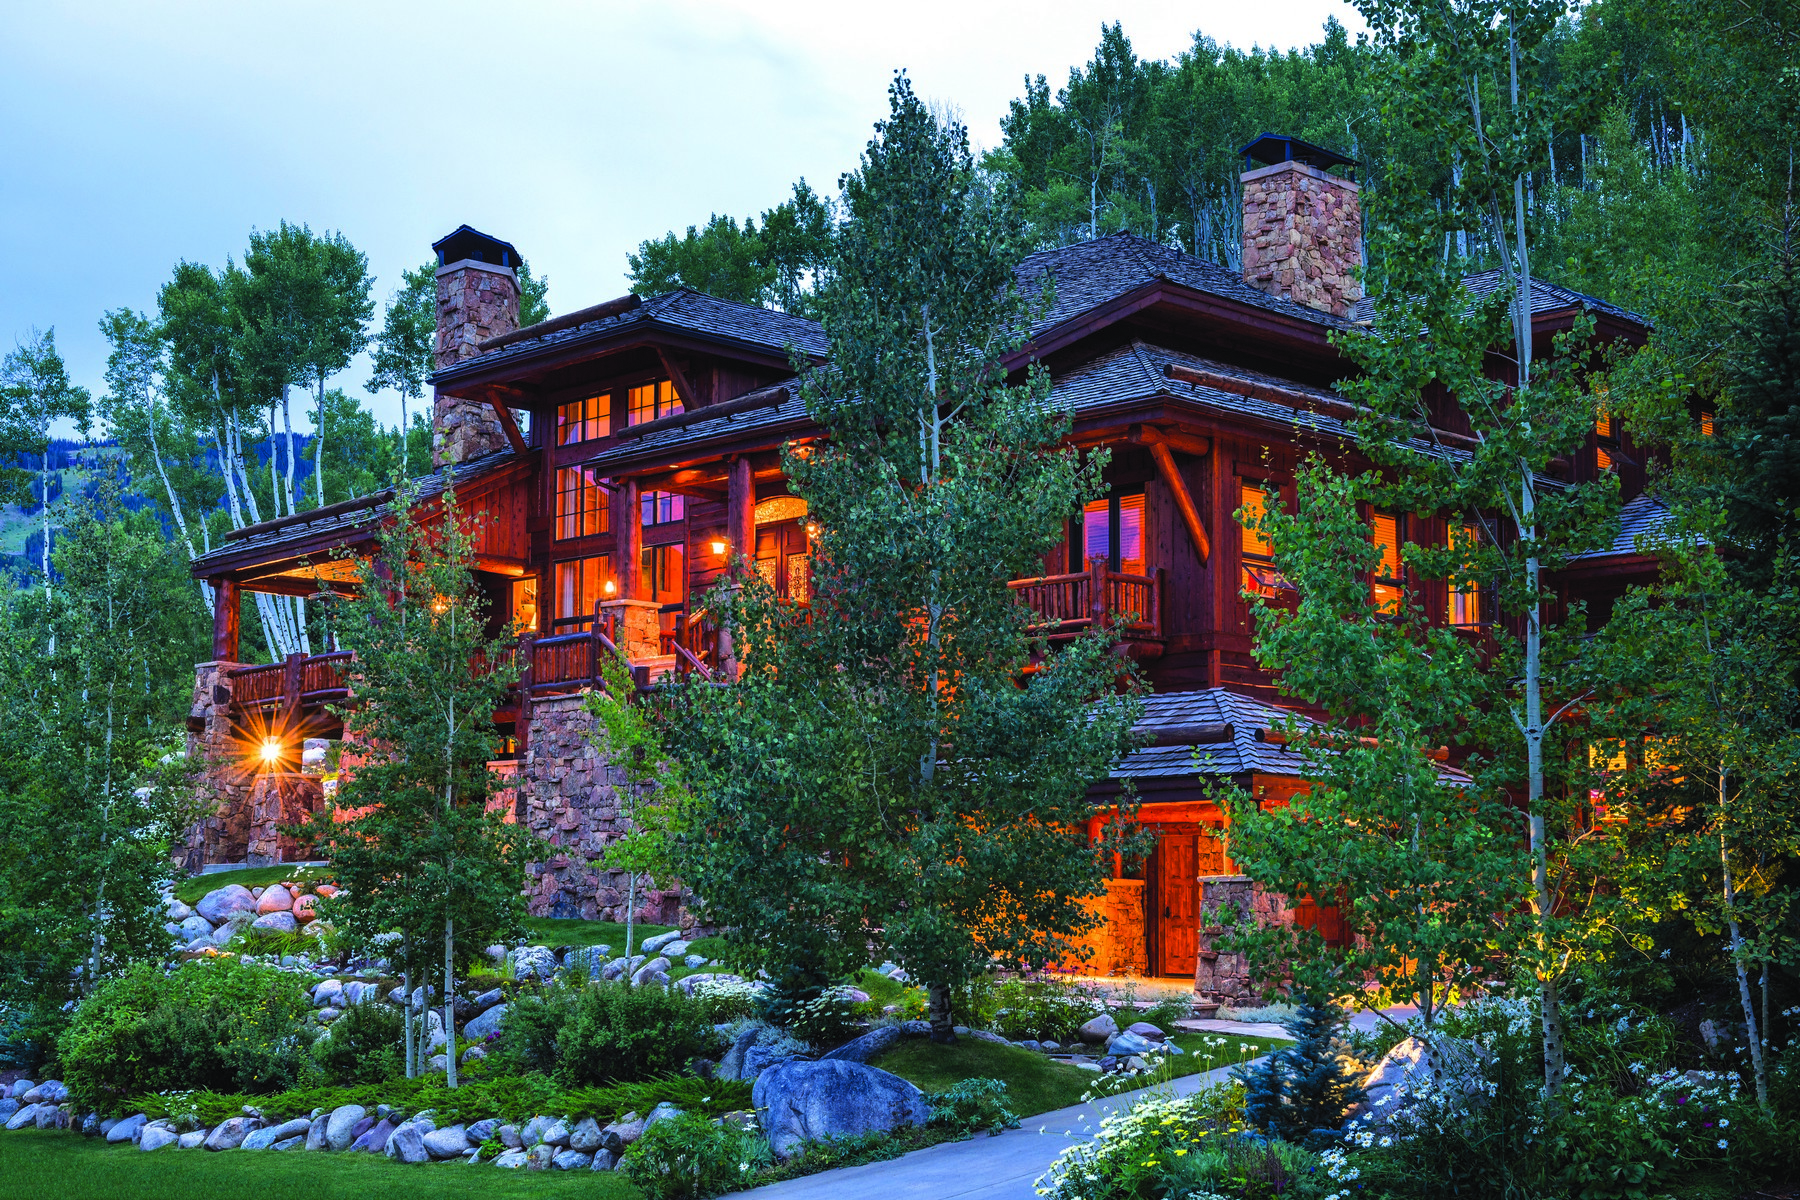 Single Family Home for Active at Beaver Creek's Most Stunning Log Home 201 Borders Rd Avon, Colorado 81620 United States